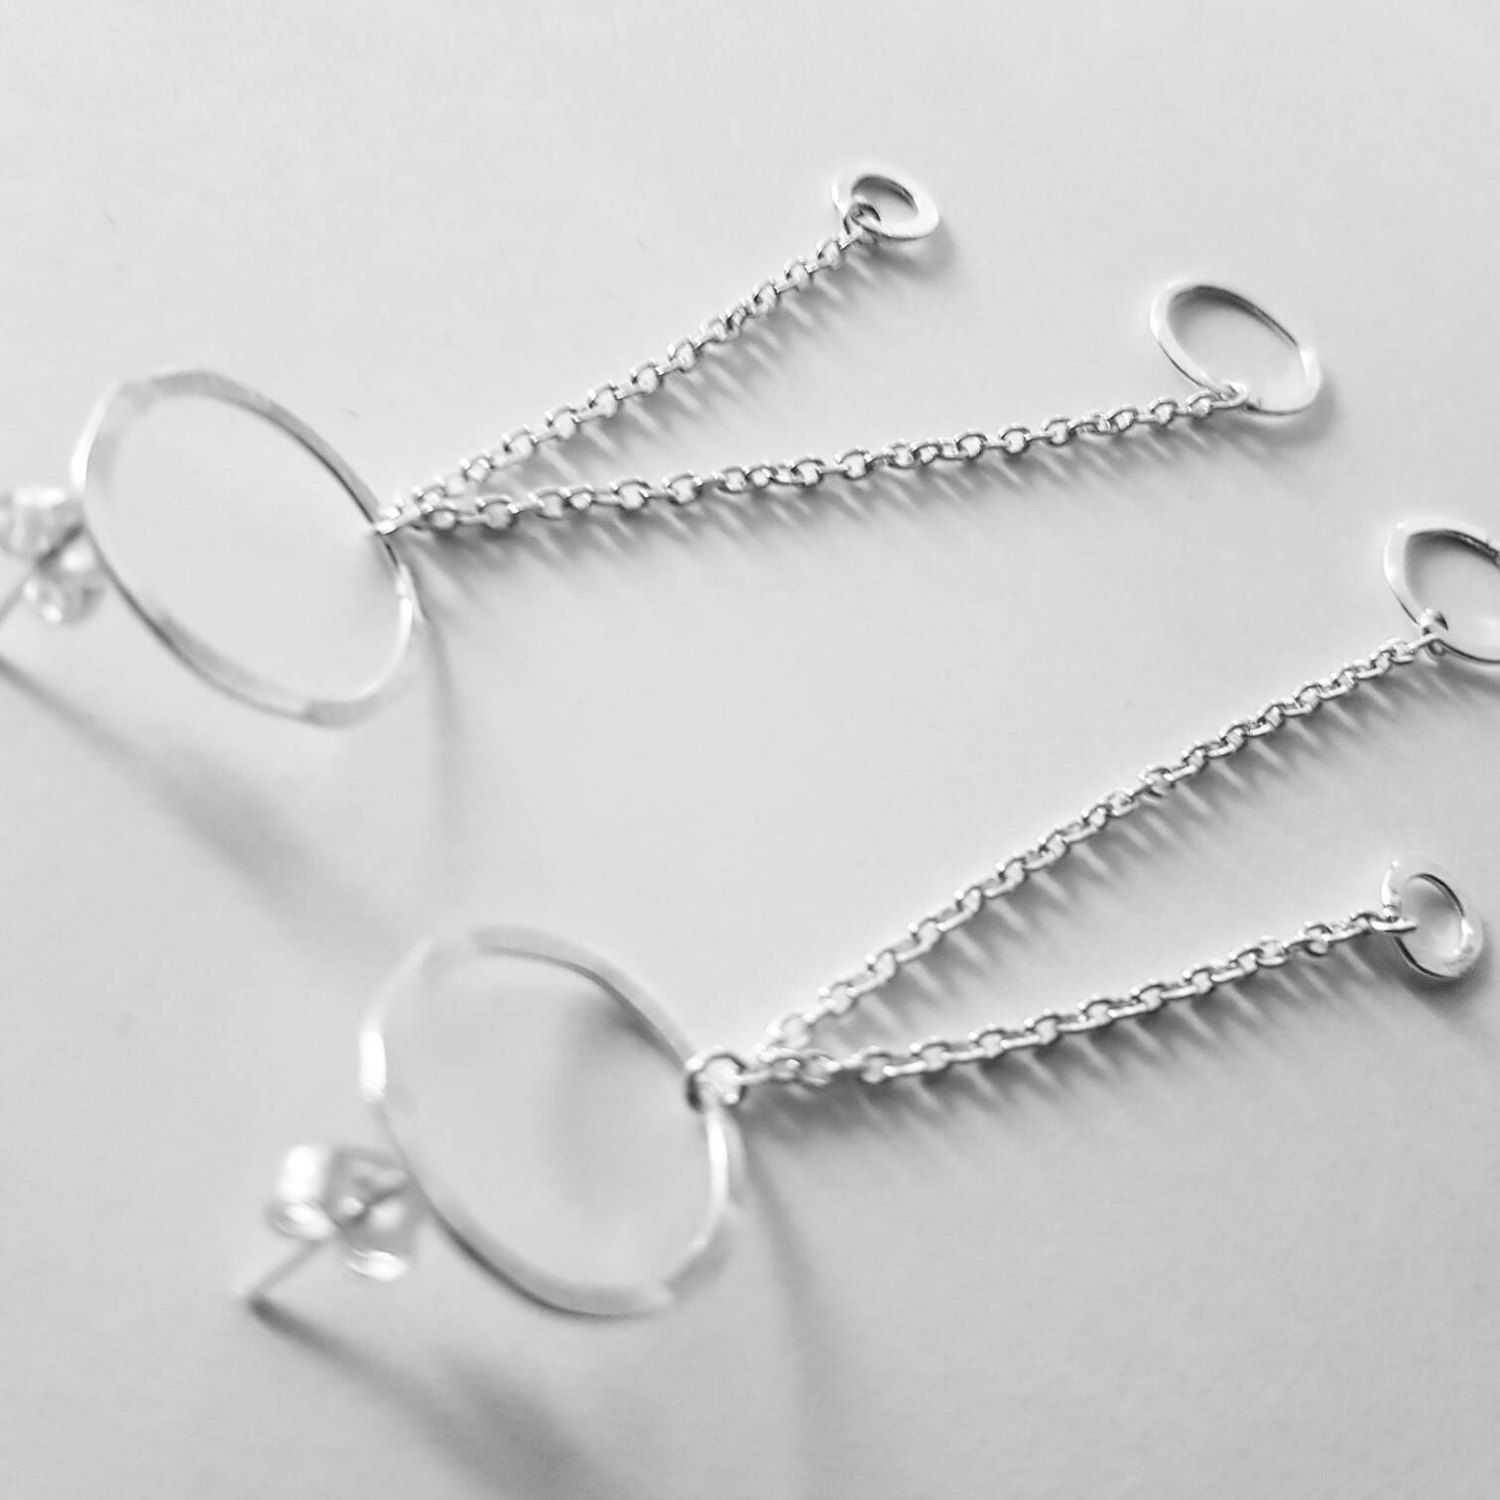 sterling earrings pin stud geometric hanging long hoop oval silver